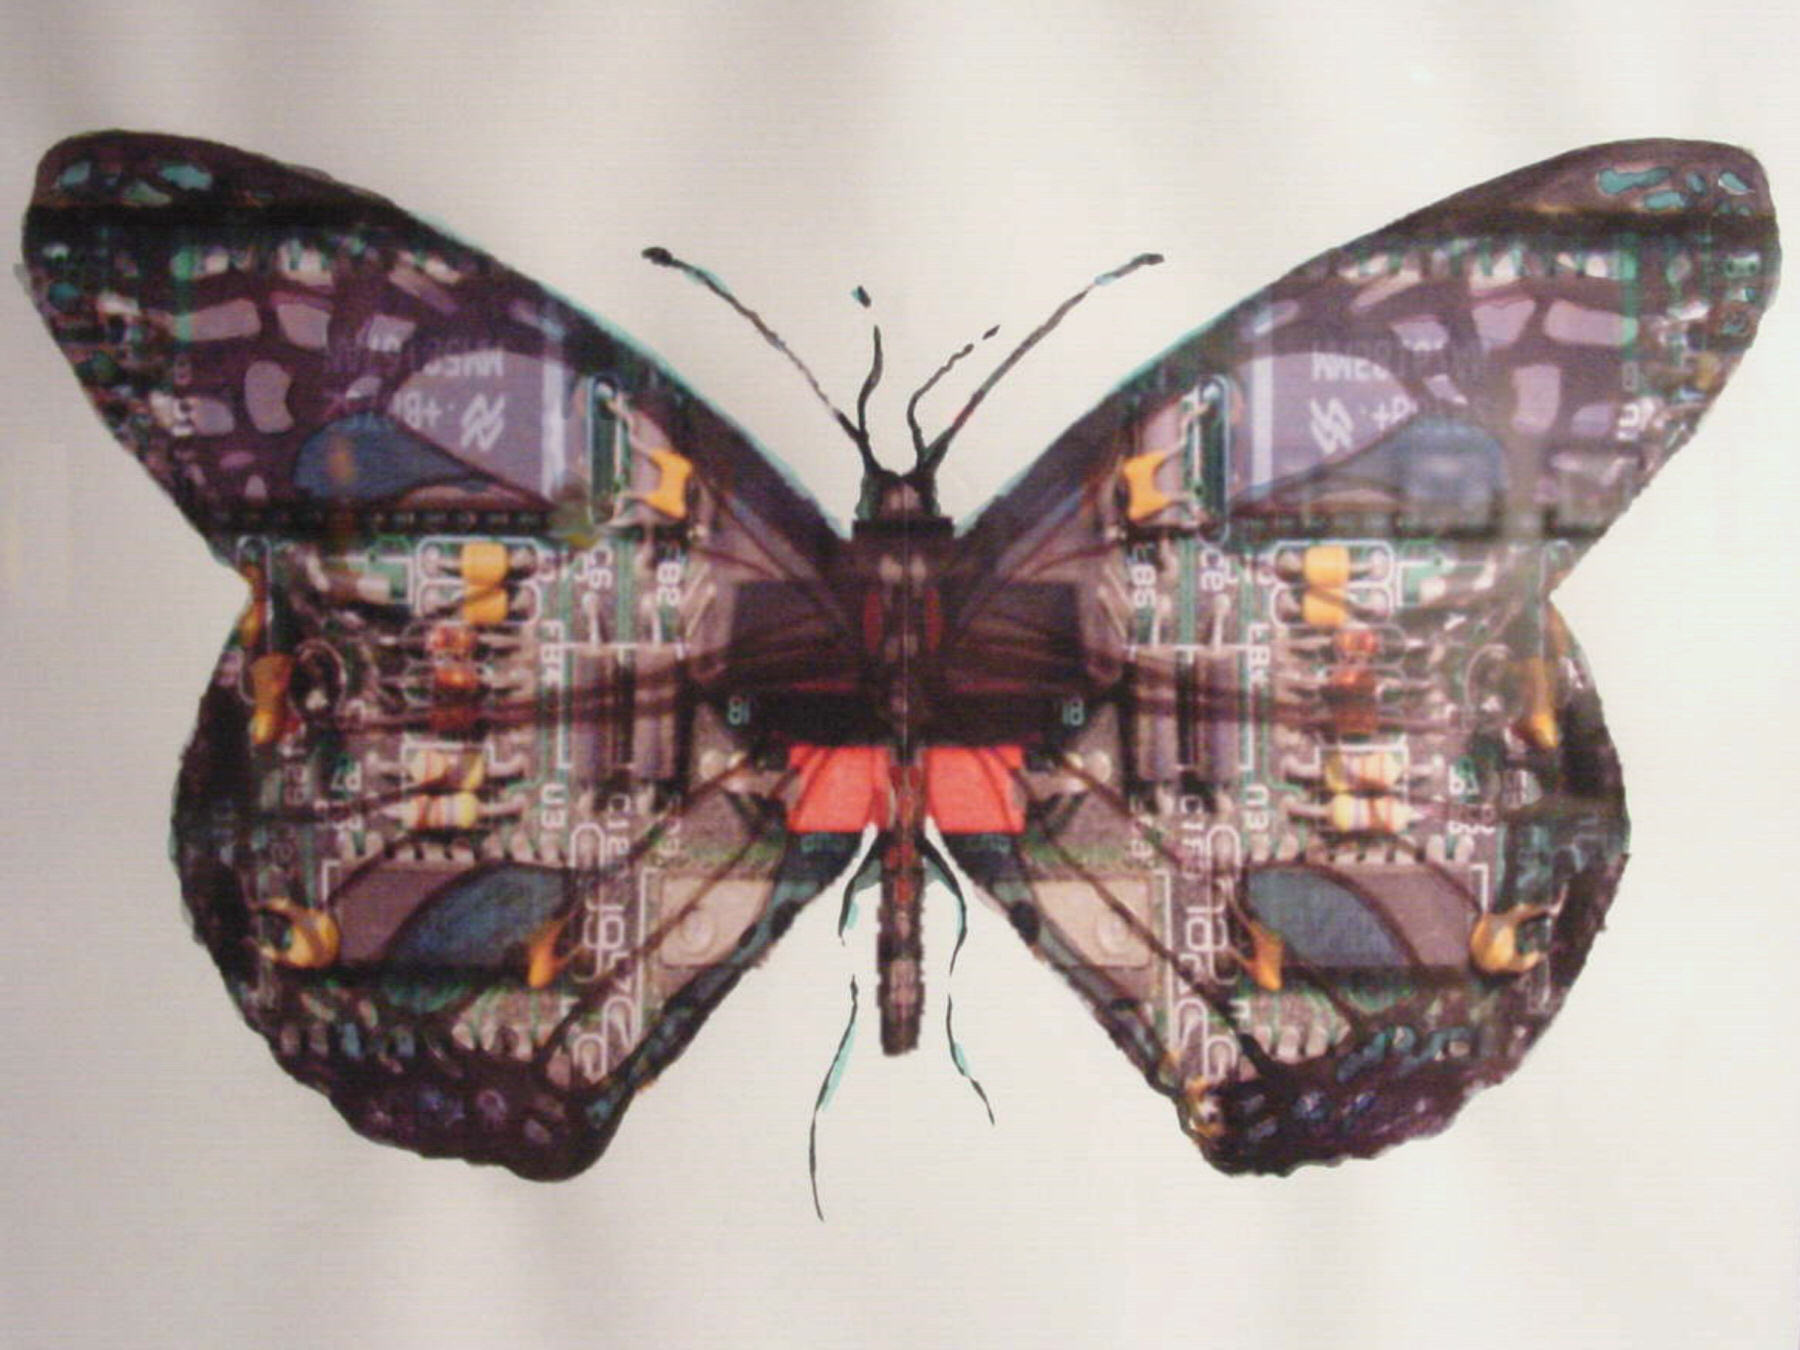 Circuit Board Butterfly   (2010). W atercolor and pastel on computer print by  Laura C. Hewitt .